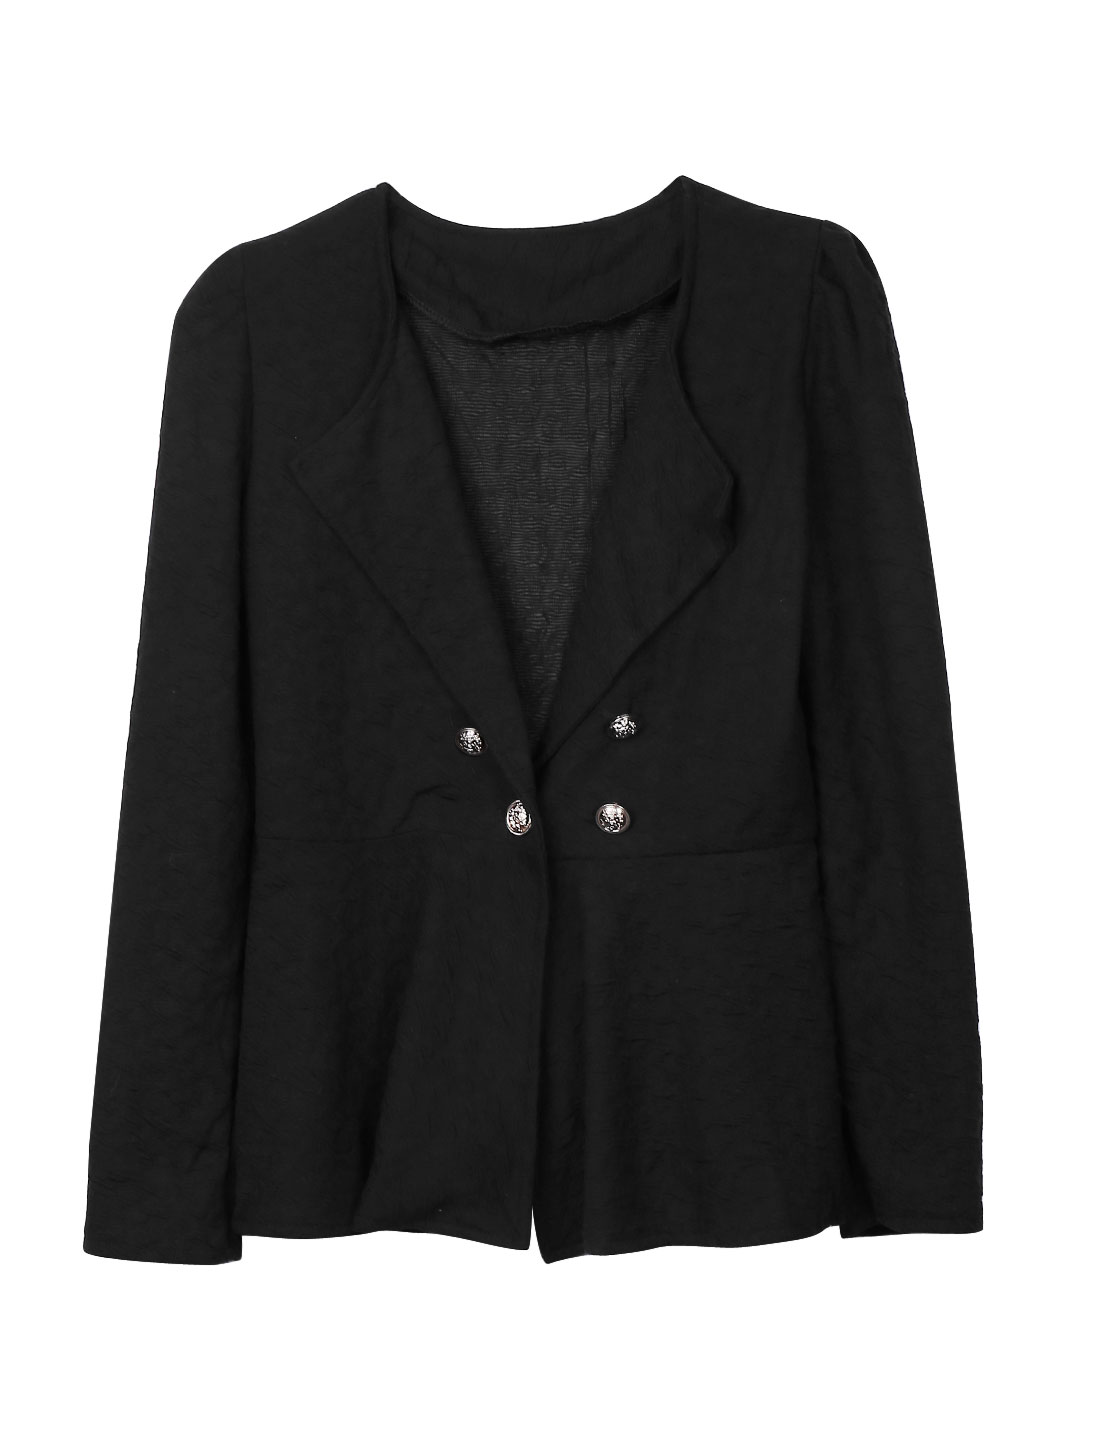 Ladies Black One Button Closure Ruffled Detail Hem Turn Down Collar Jacket S